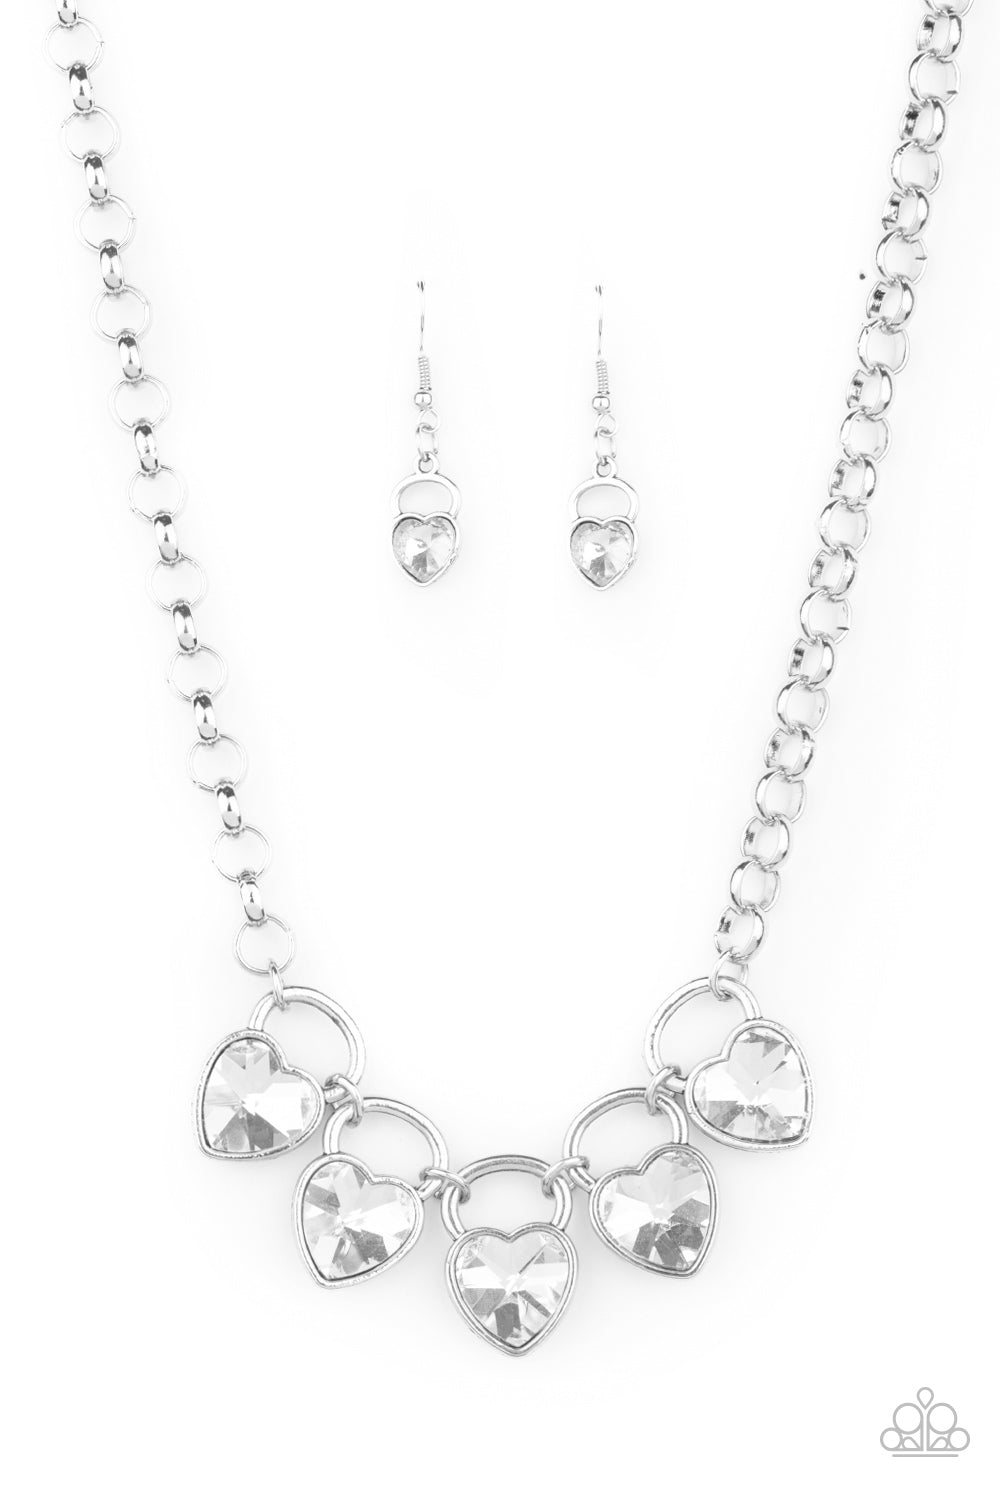 five-dollar-jewelry-heart-on-your-heels-white-necklace-paparazzi-accessories